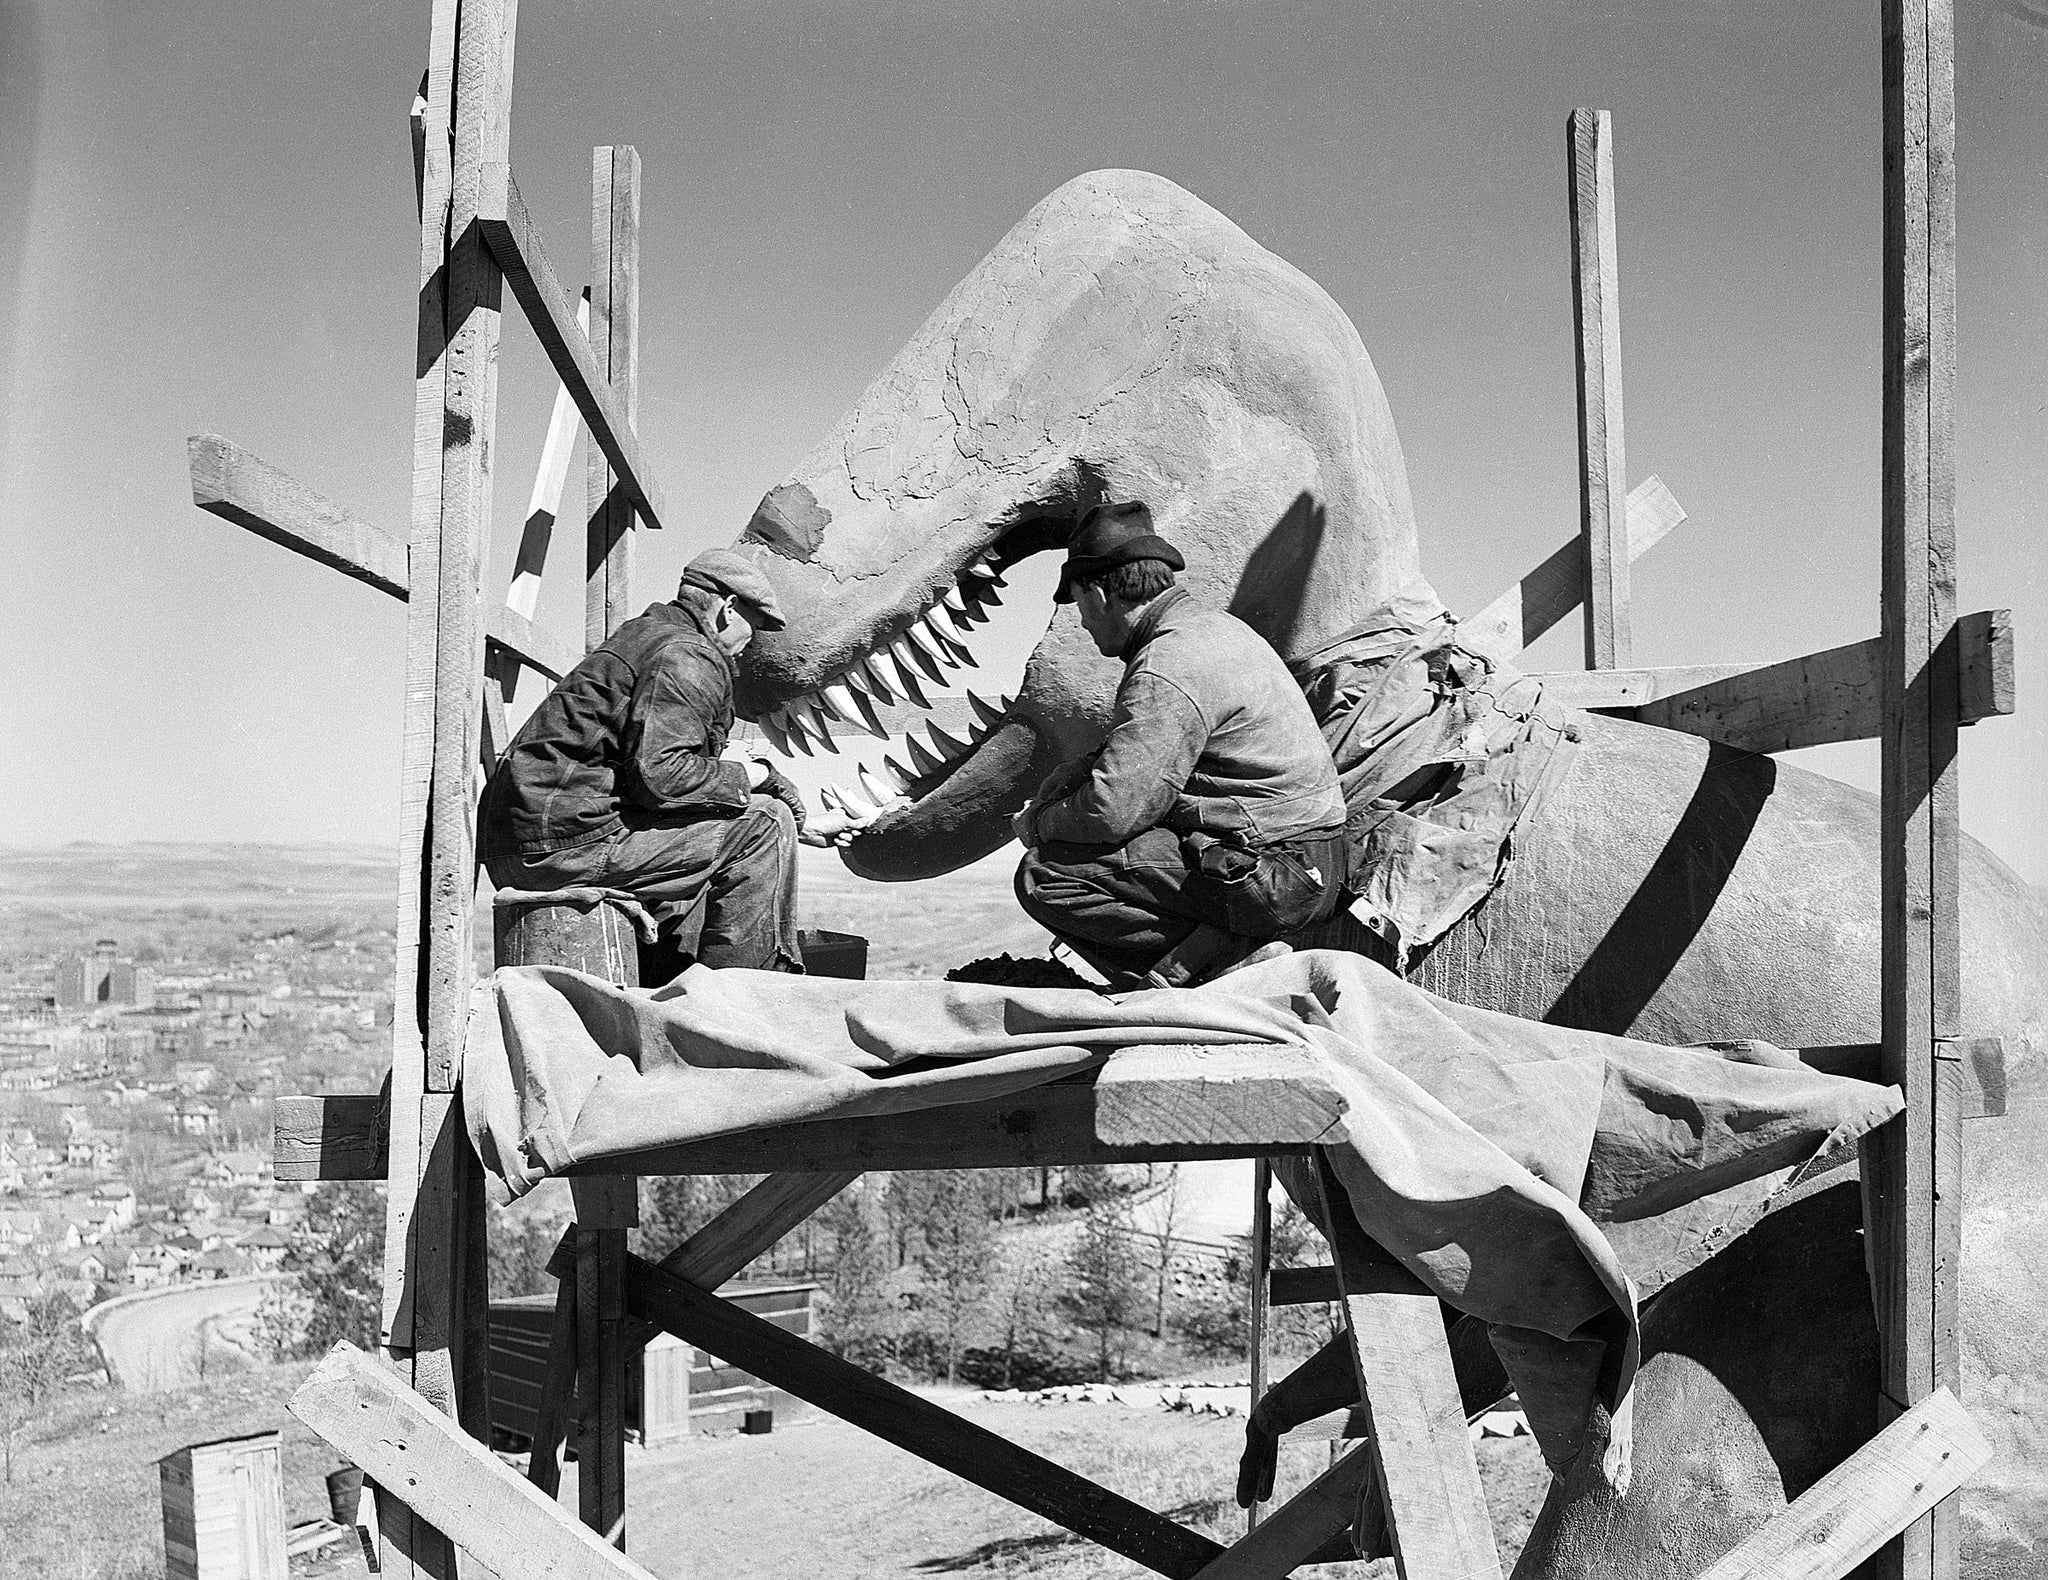 Dinosaur Park statue construction, 1930s. The sculptures were designed by Emmet Sullivan and the park was dedicated on May 22, 1936. -- Courtesy of the Rapid City Journal